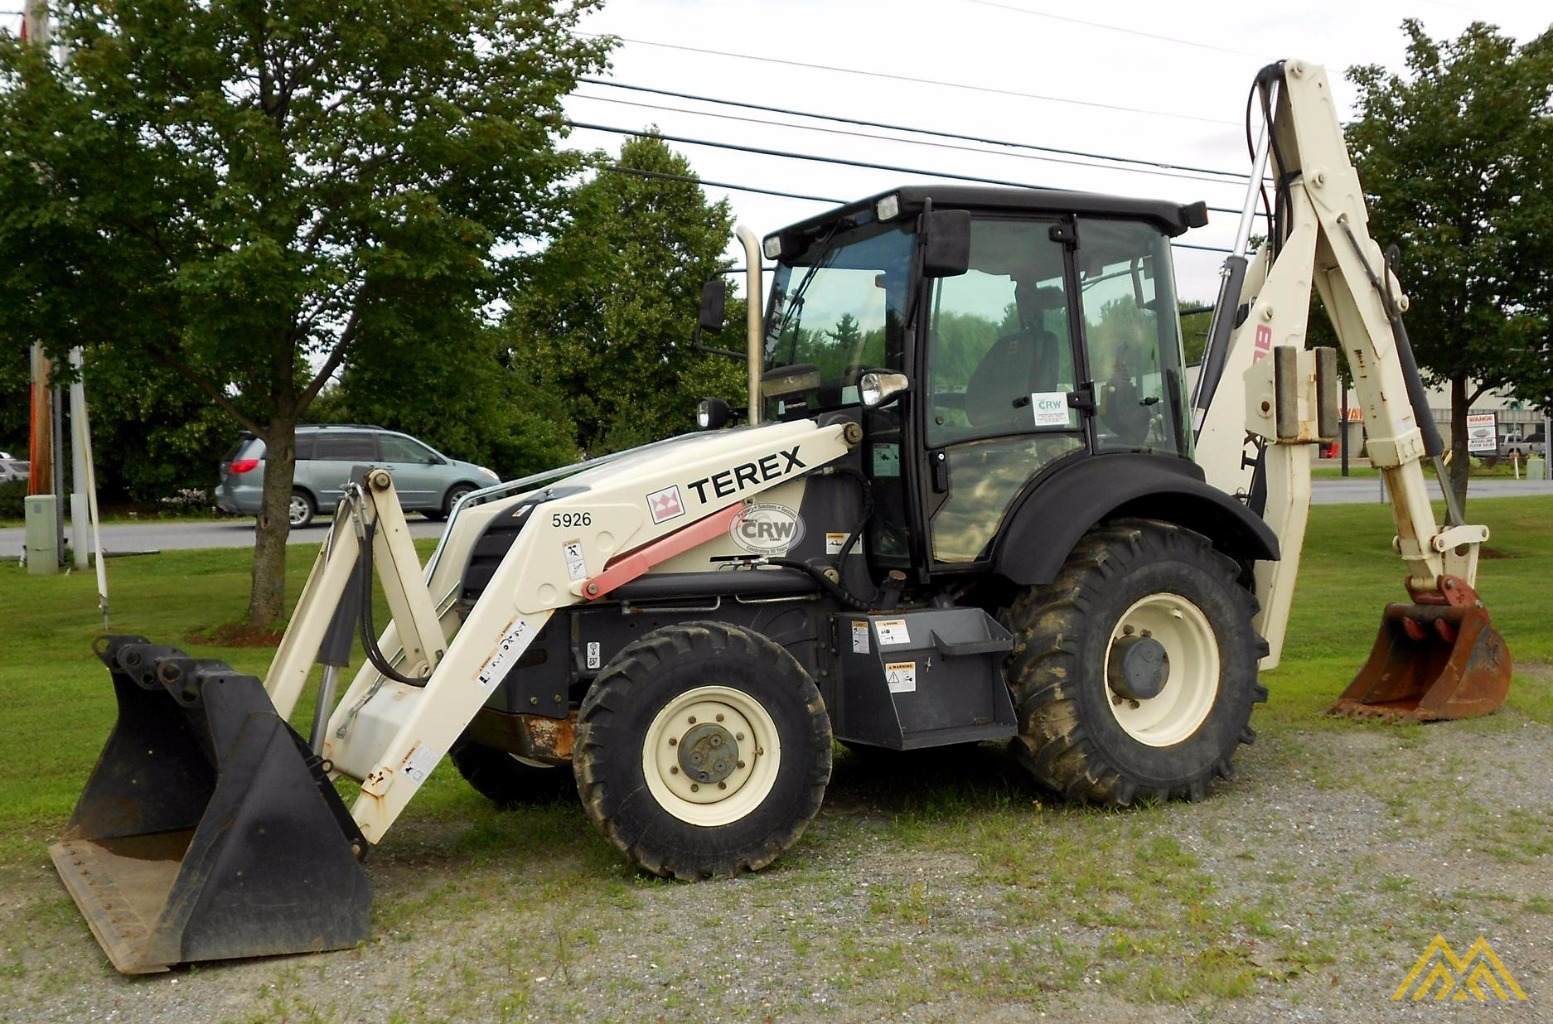 Low Hr!! 2010 Terex TX760B Backhoe Loader 0